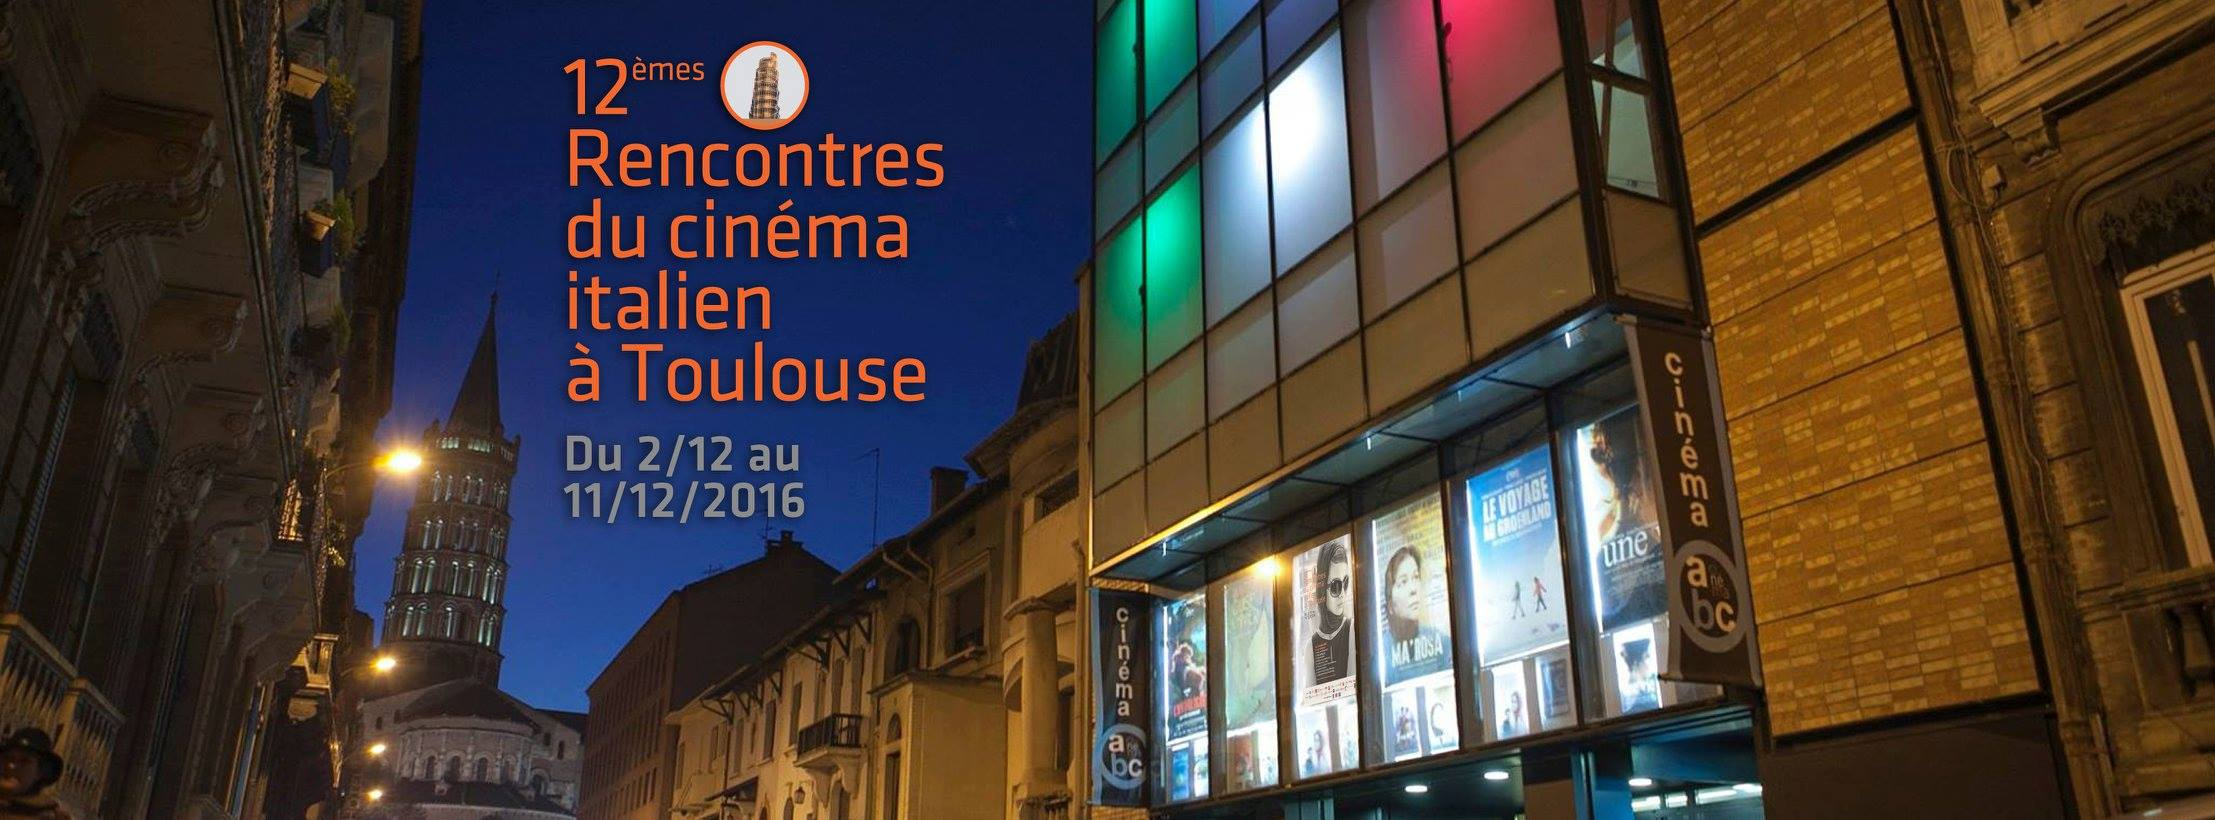 Rencontre cinema manosque 2016